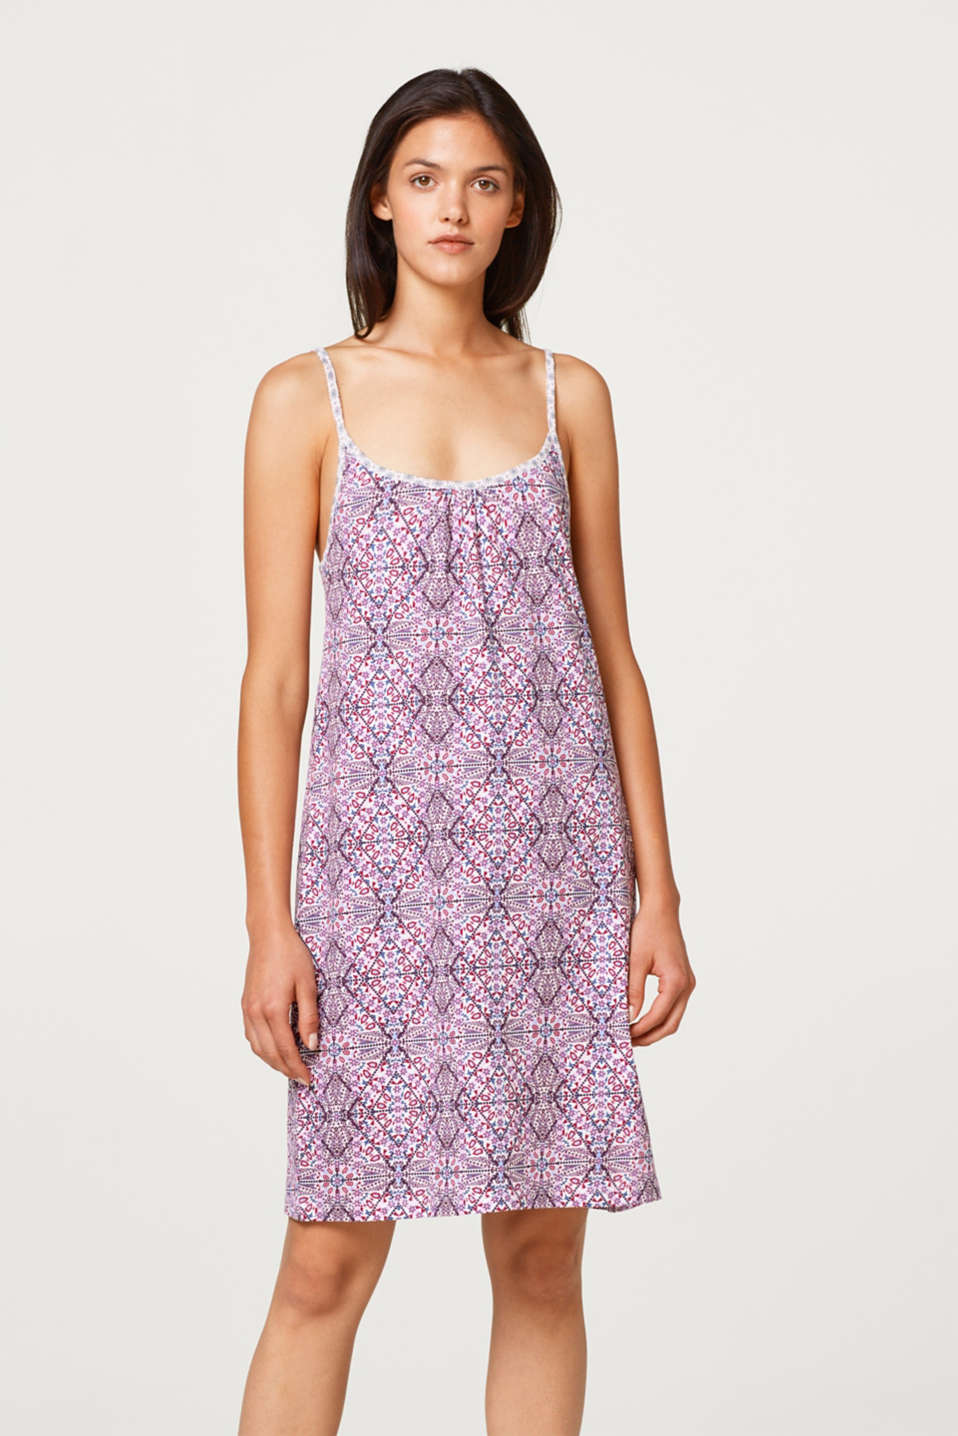 Esprit - Jersey print nightdress, 100% cotton